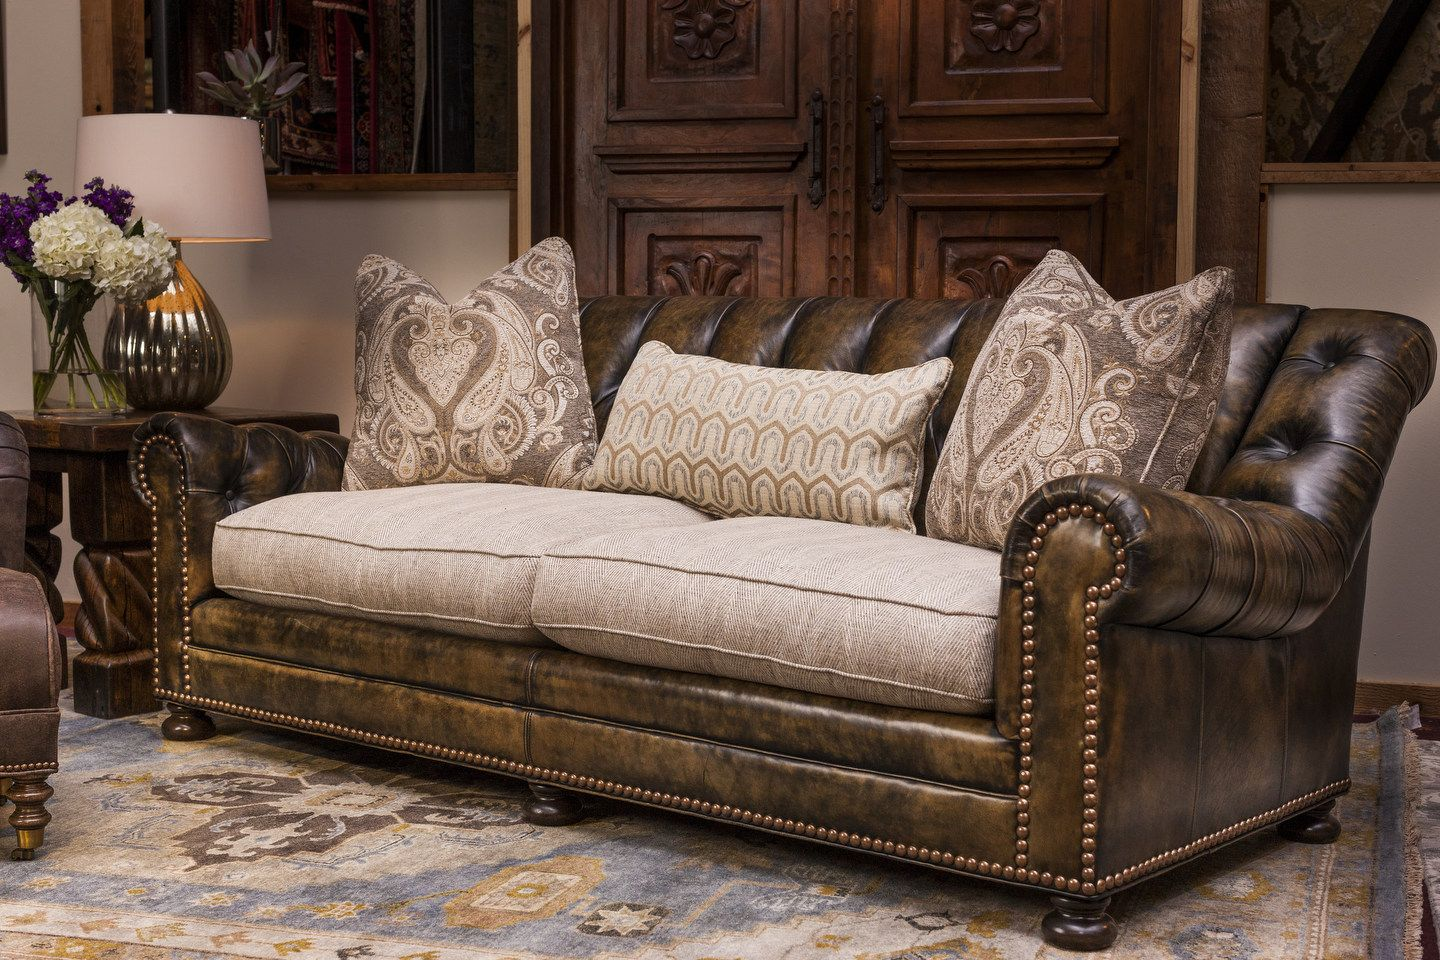 Guadalupe Sofa | Abilene New Home | Home decor styles, Home ...